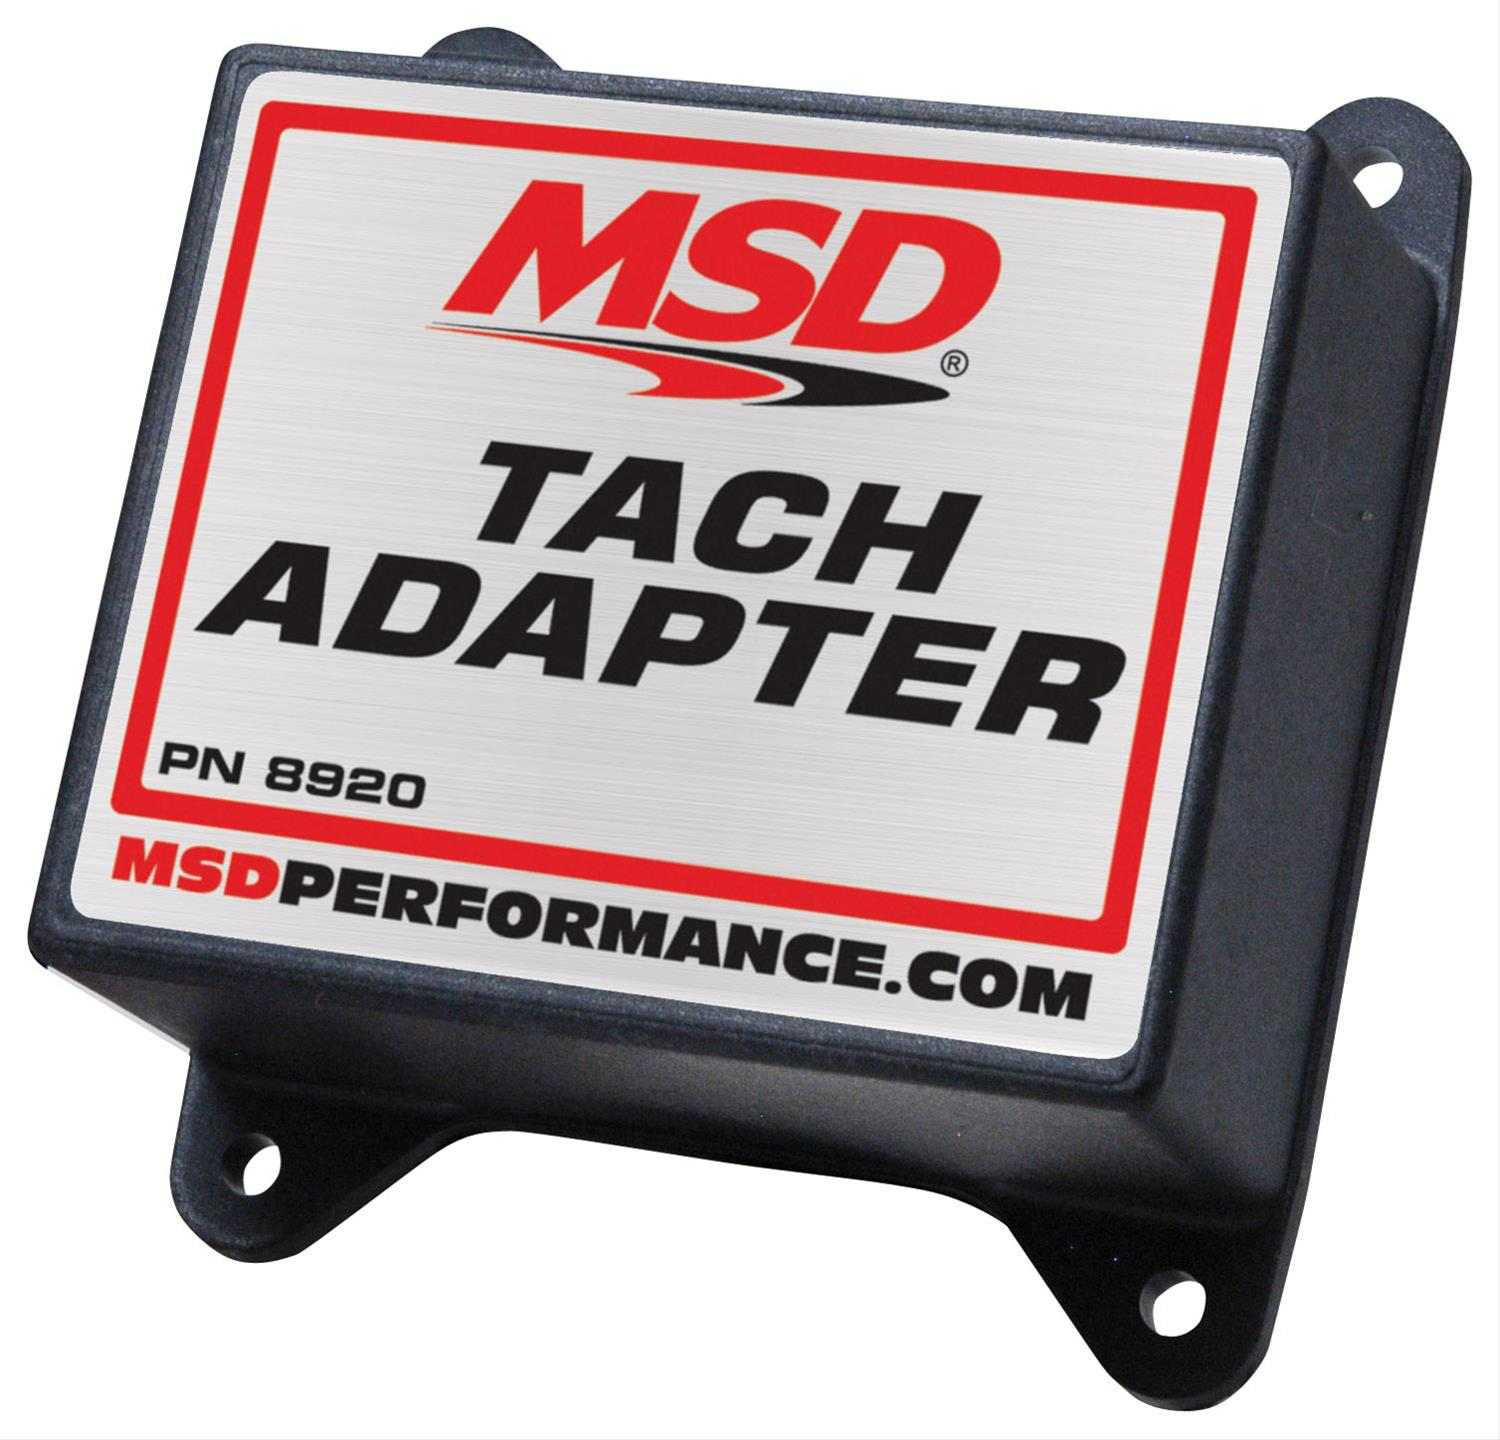 hight resolution of msd magnetic pickup tach adapters 8920 free shipping on orders over 99 at summit racing